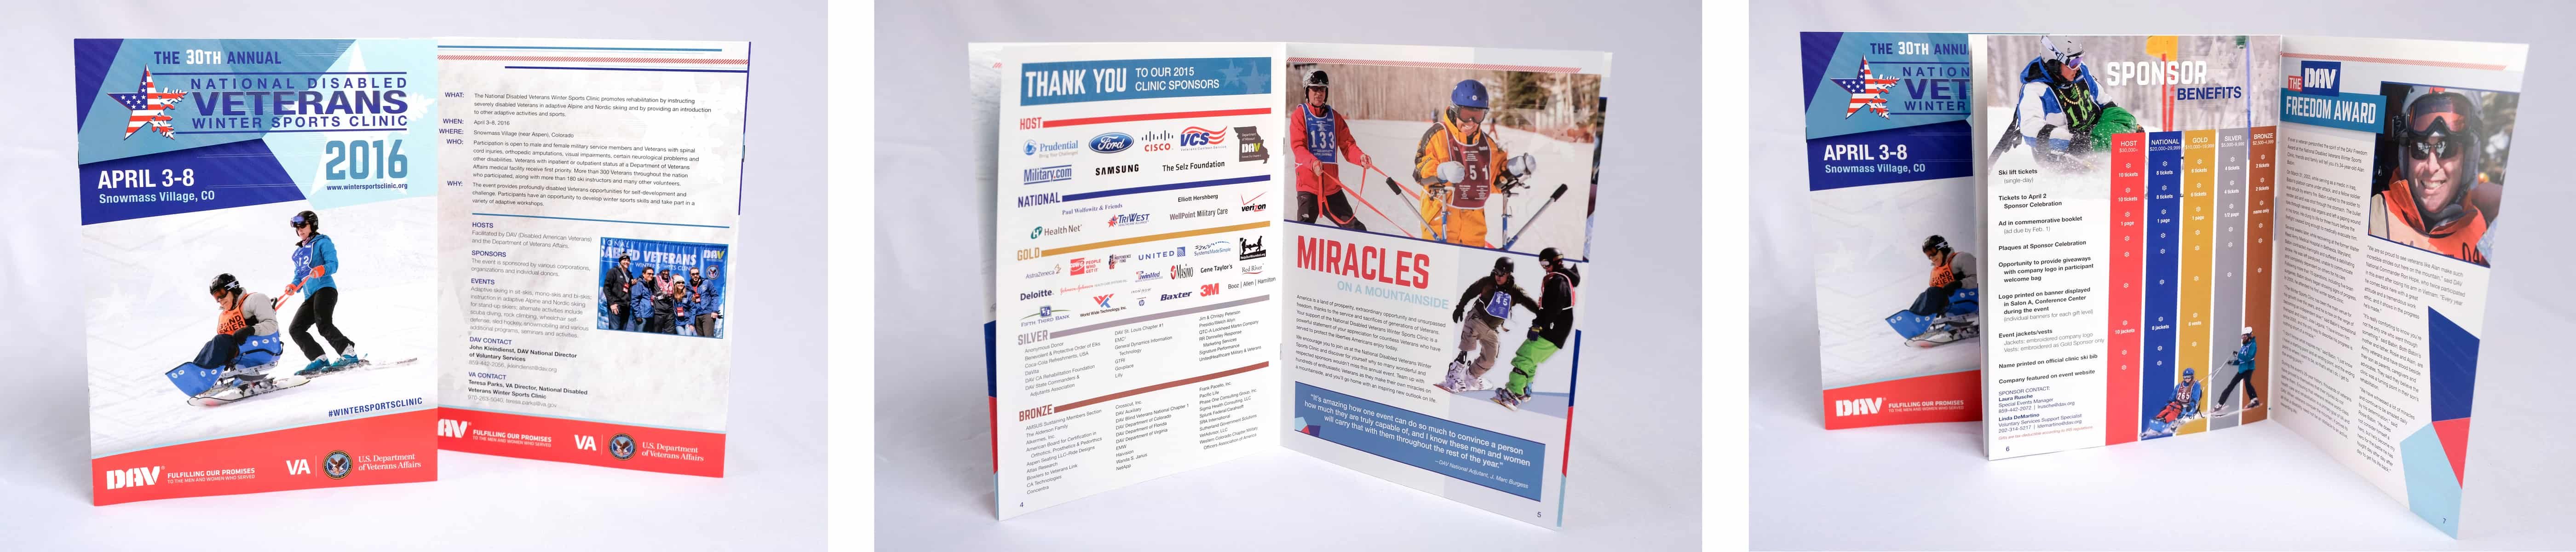 The eight-page promotional booklet encouraged sponsorship for the clinic.